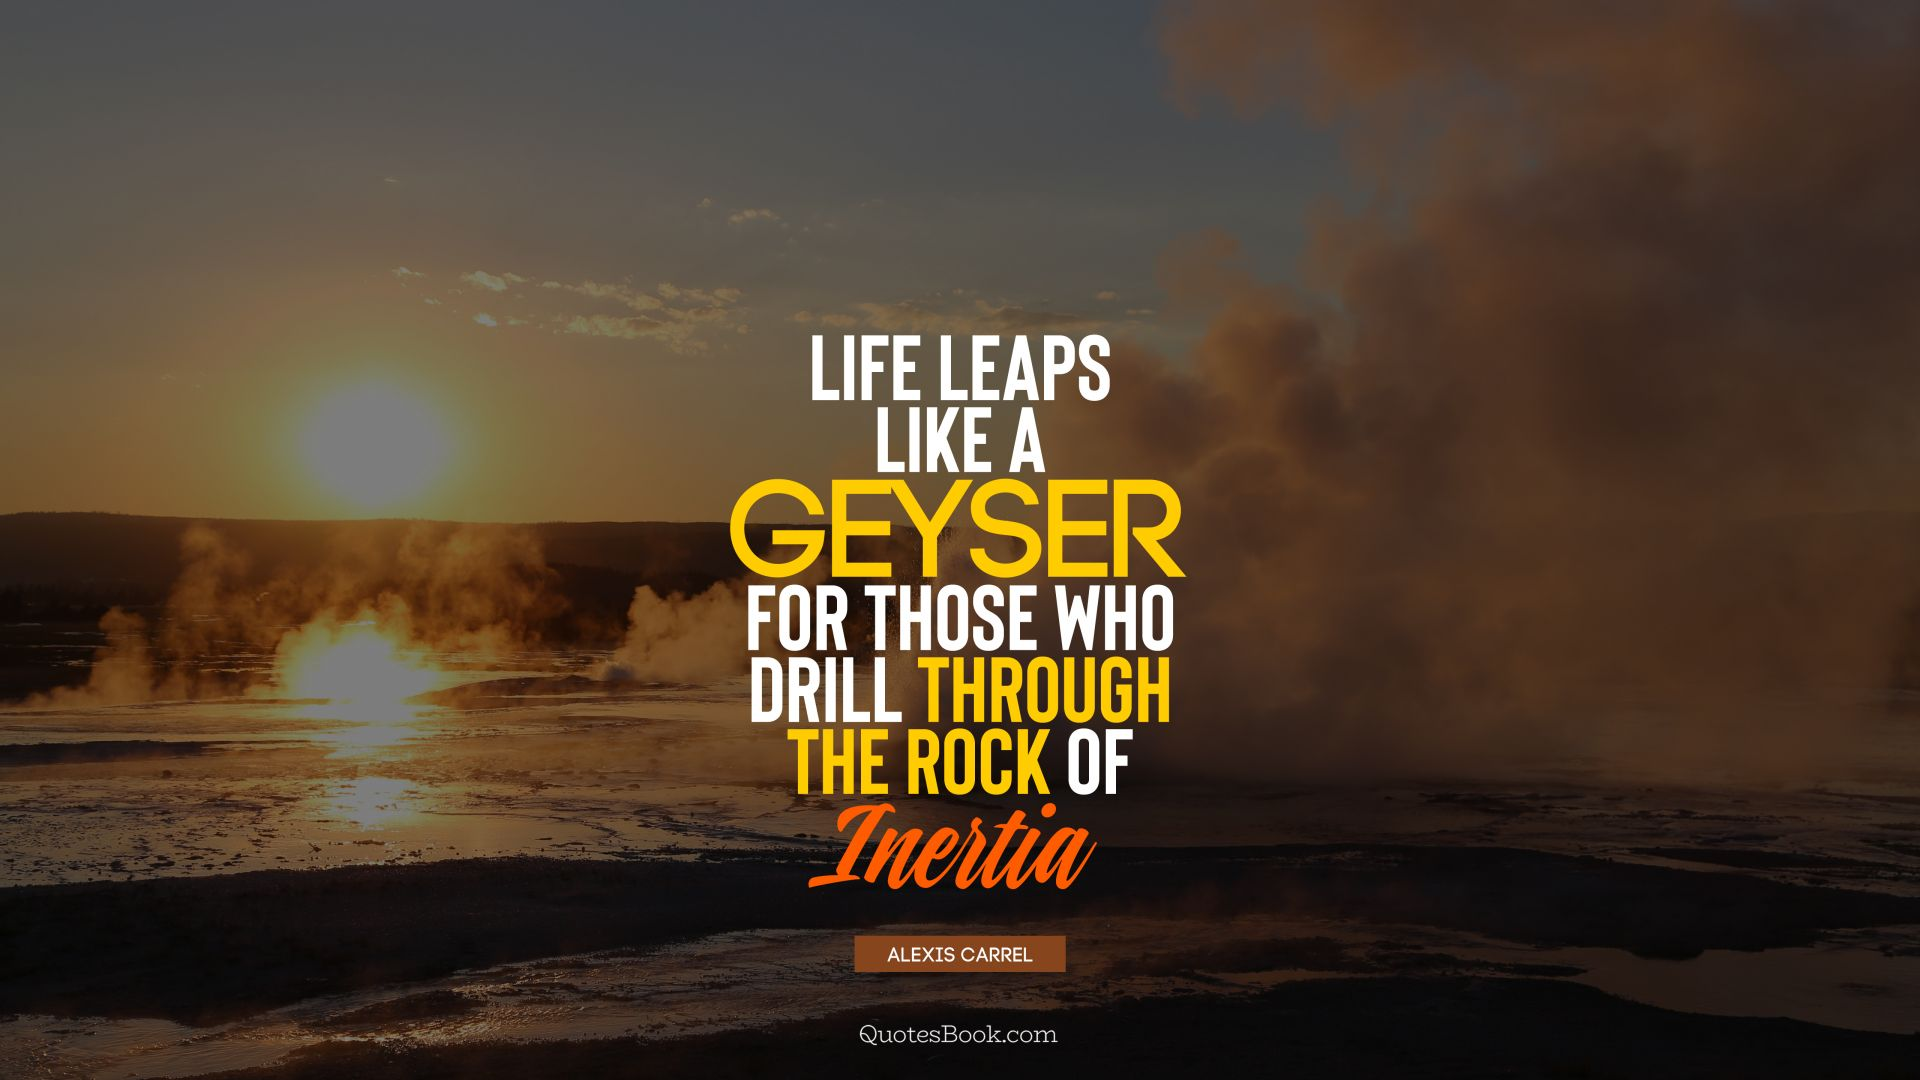 Life leaps like a geyser for those who drill through the rock of inertia. - Quote by Alexis Carrel